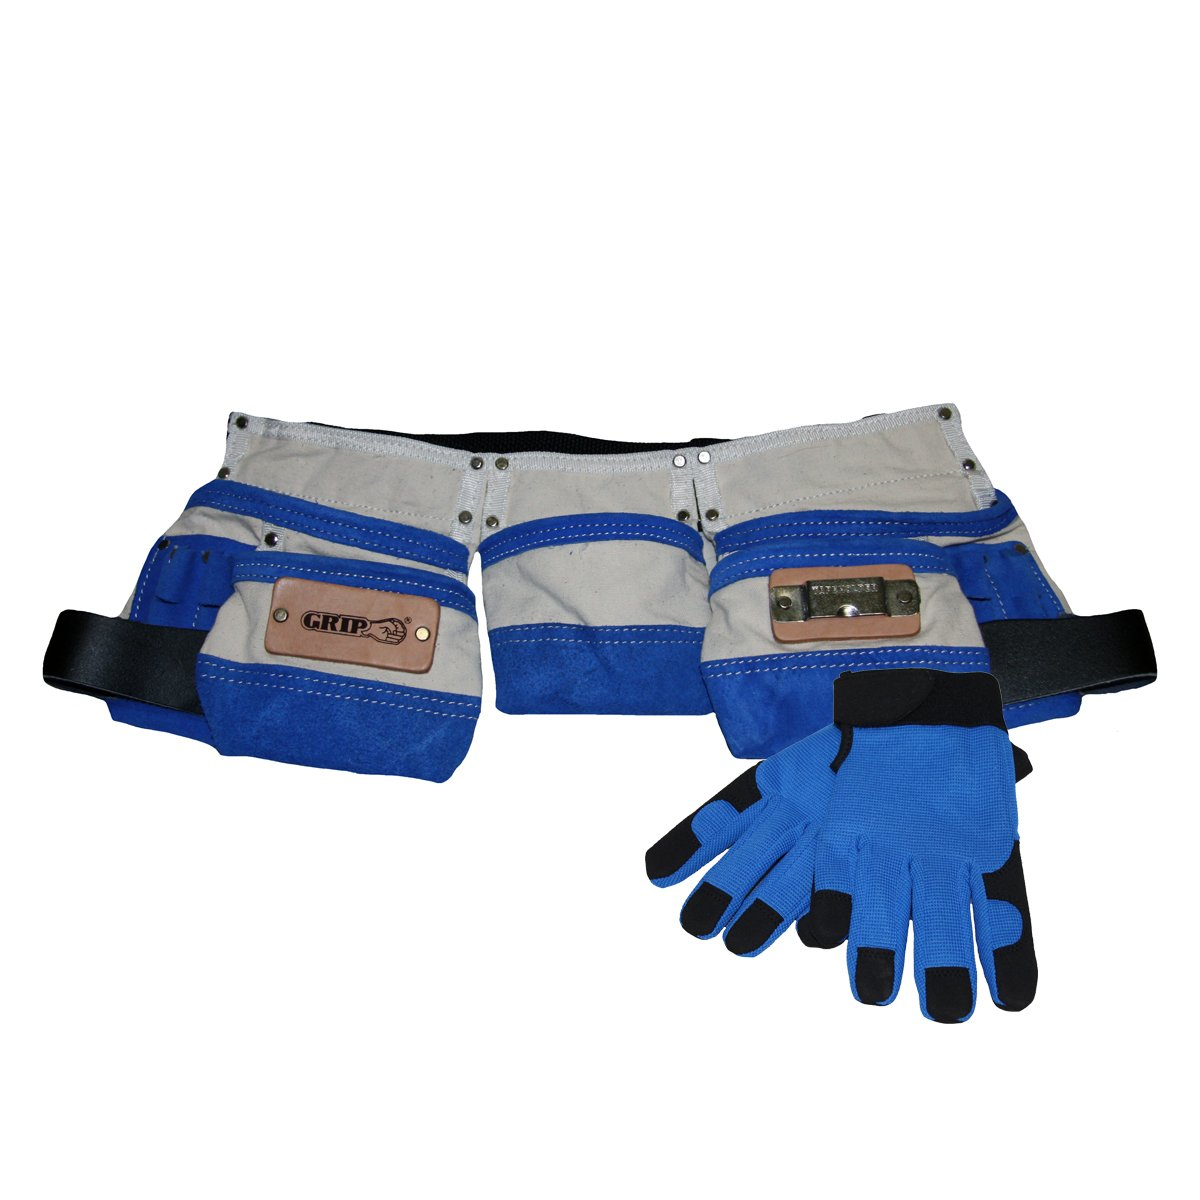 Grip's Children's Tool Belt and Gloves